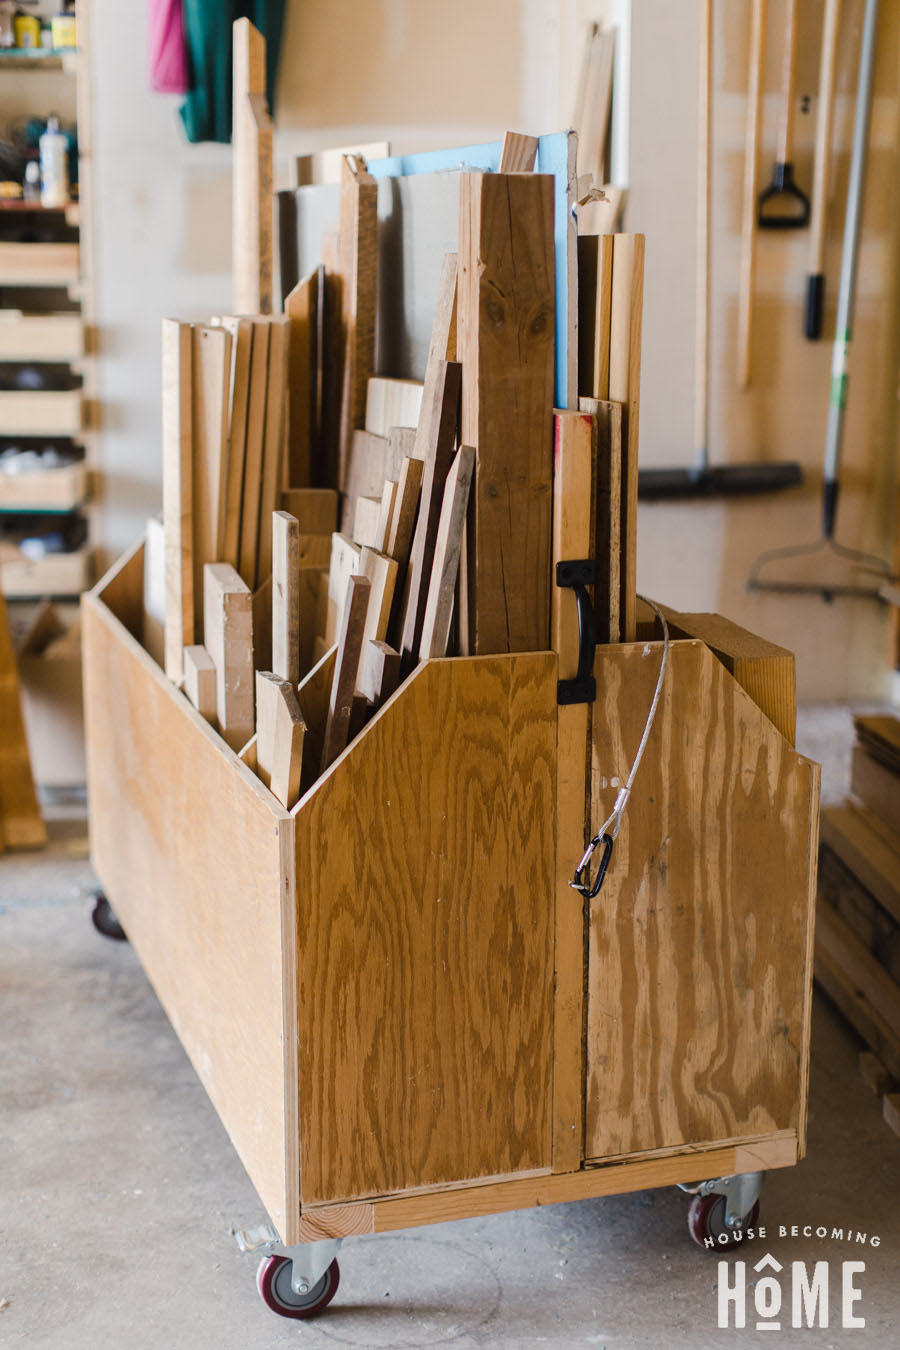 How to Build a Scrap Cart Organizer - Free Plans, Instructions and Photos